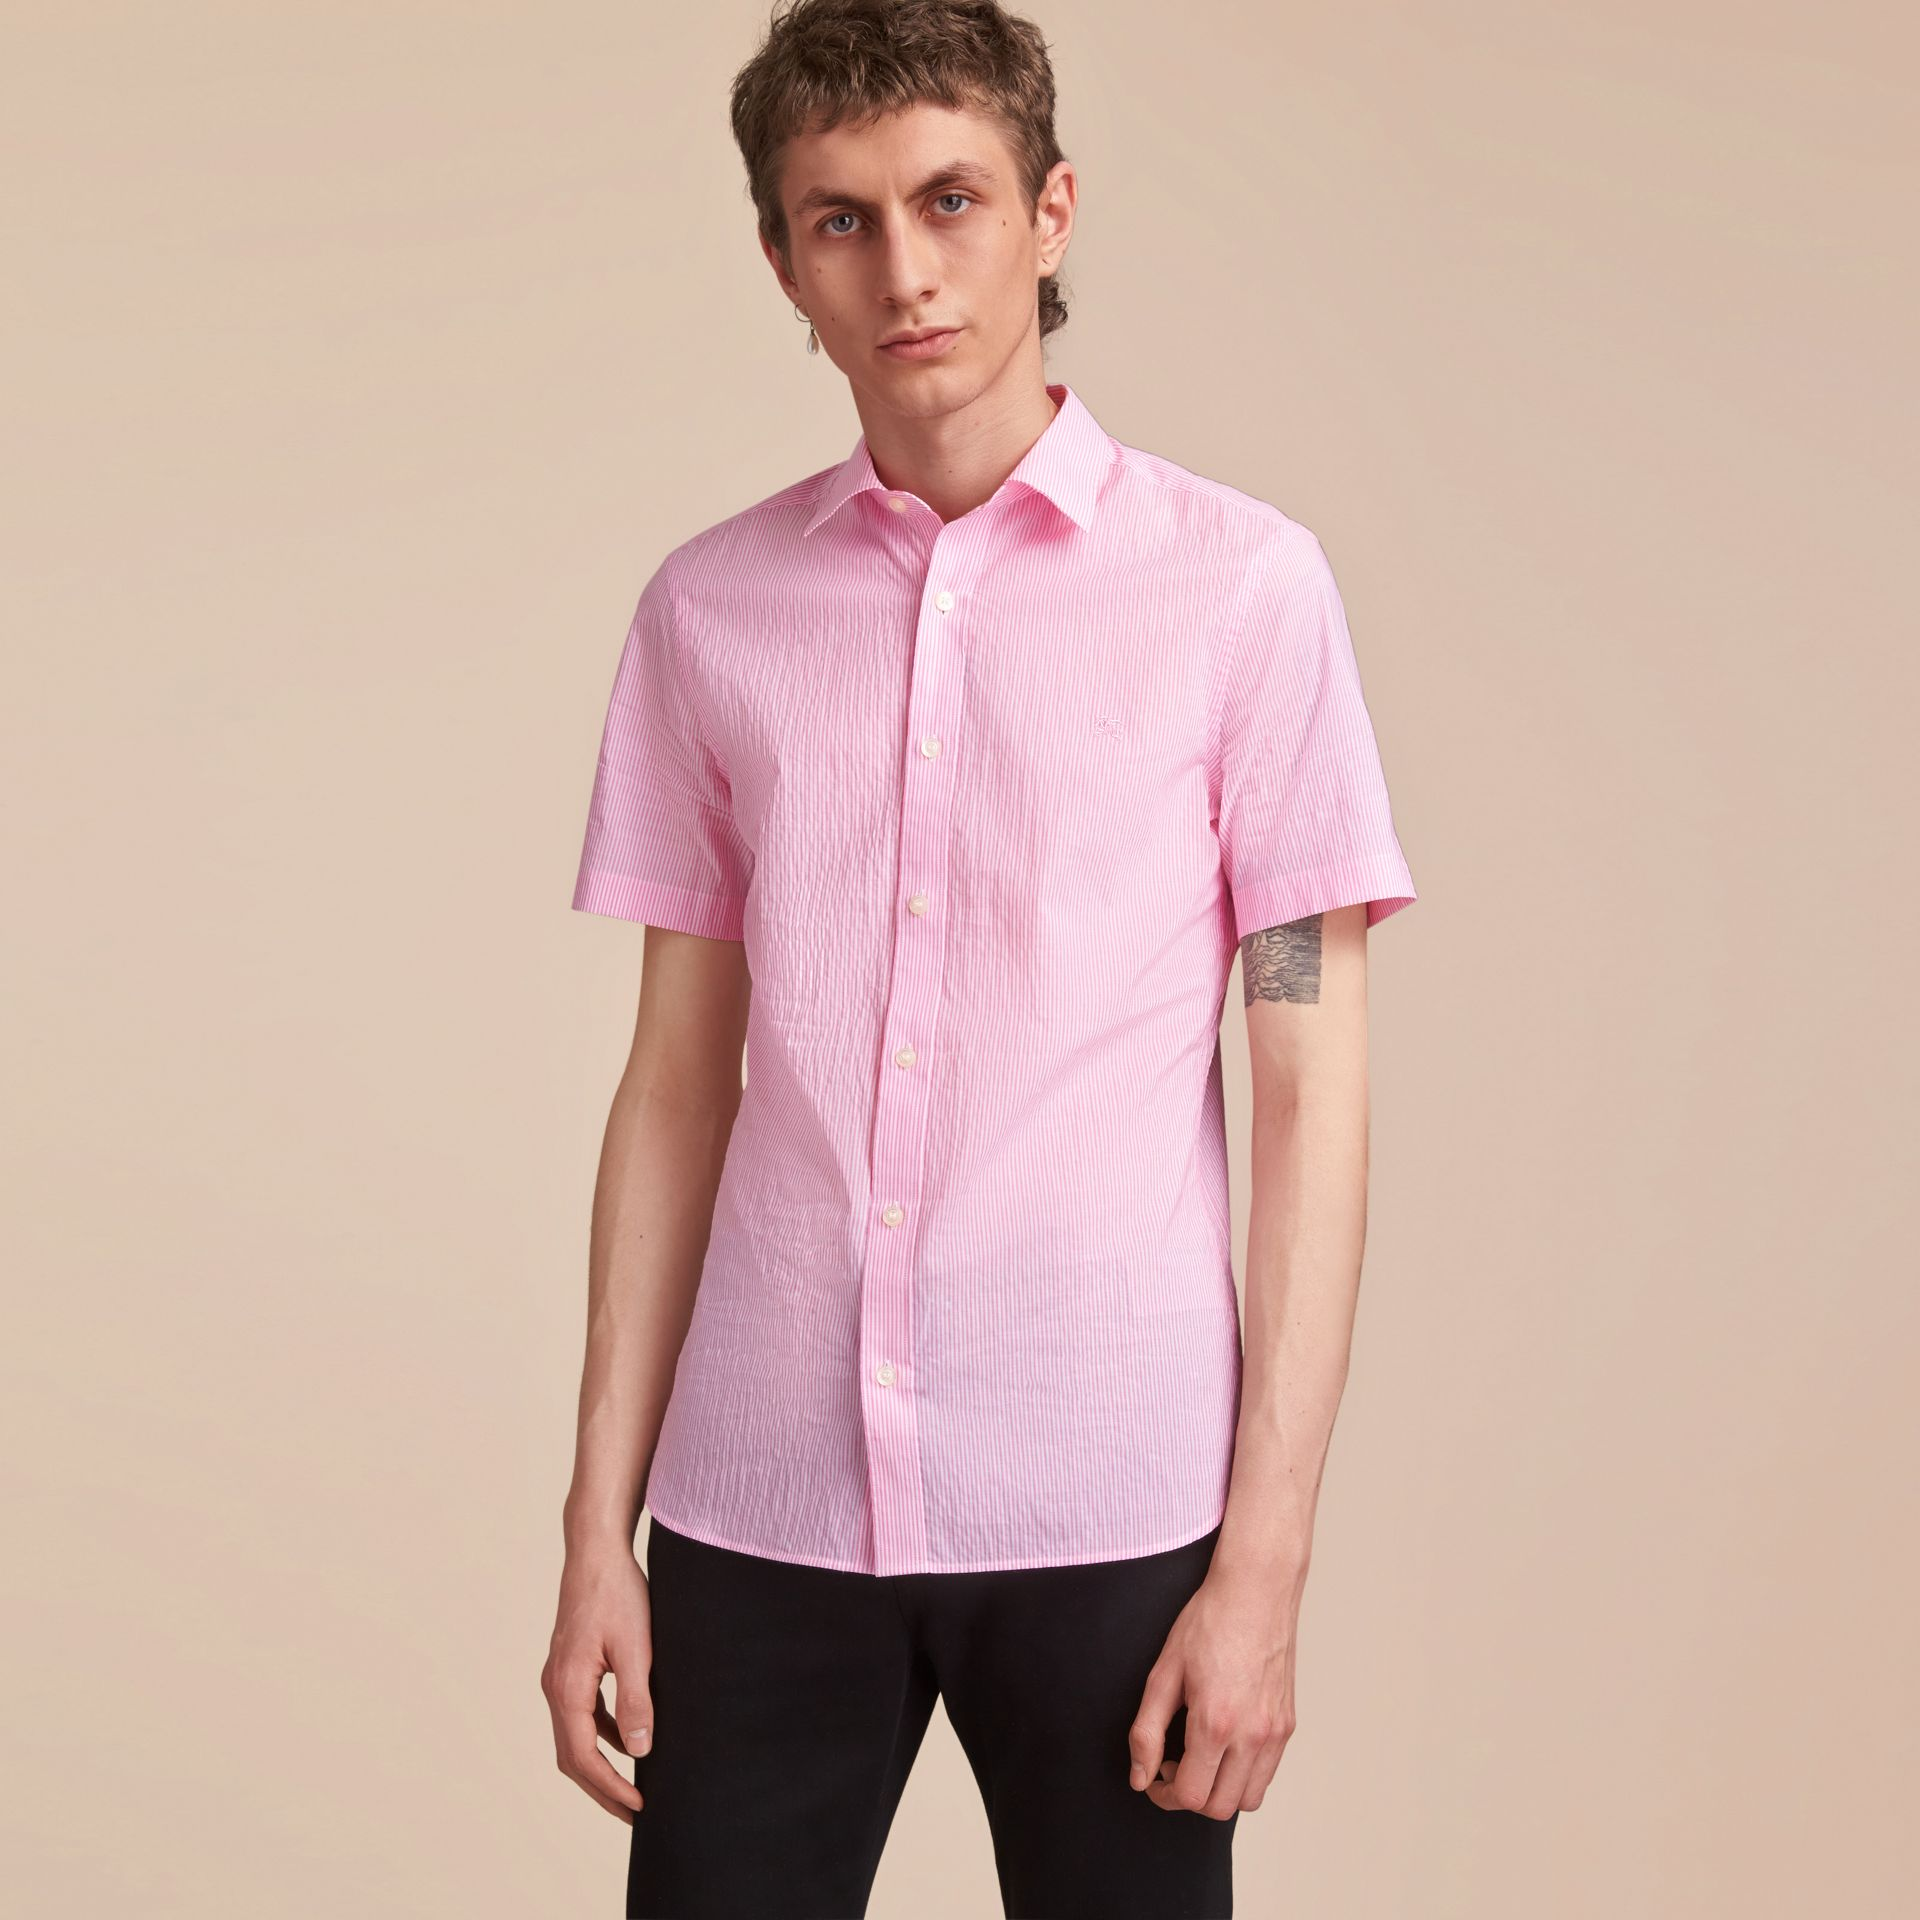 Short-sleeve Striped Cotton Seersucker Shirt in Pale Pink - Men | Burberry - gallery image 6